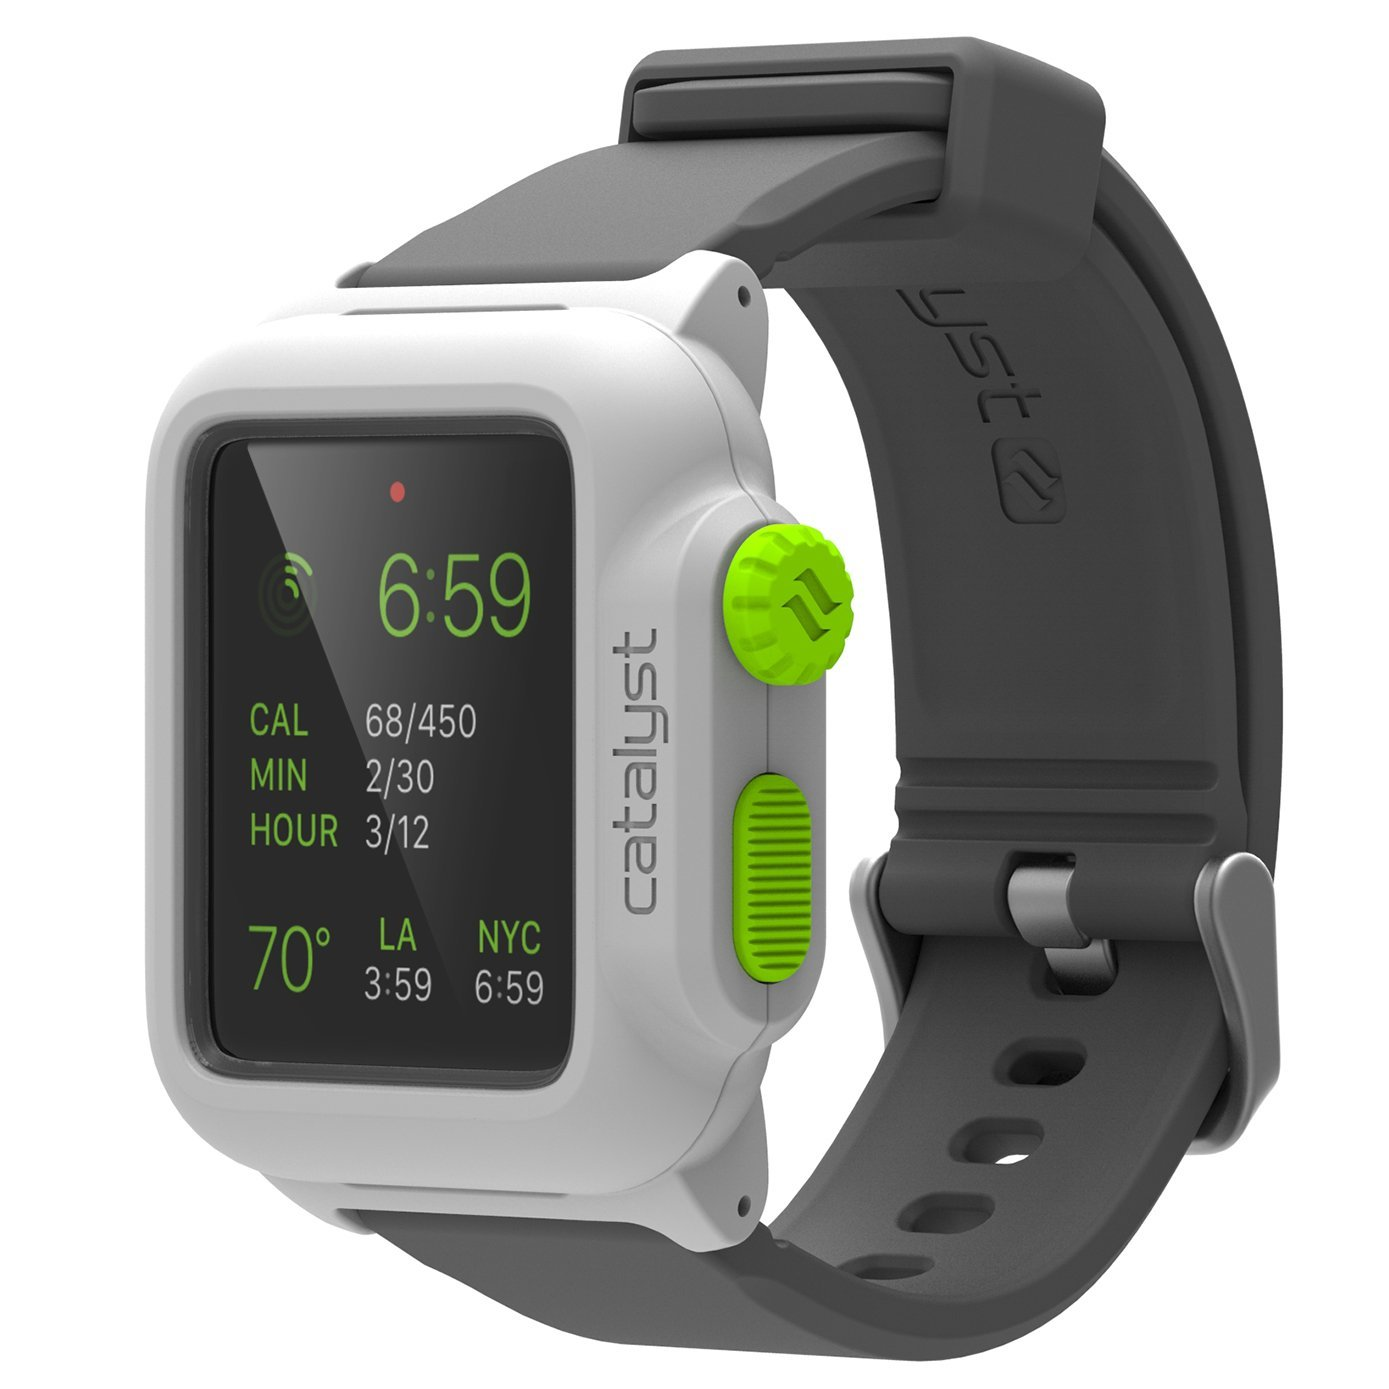 online store e594d 1ab63 Apple Series 1 42mm Waterproof Watch Case by Catalyst, Shock Proof Premium  Material Quality for Hiking, Swimming, Beach Trips, Kayaking, Cruise ...